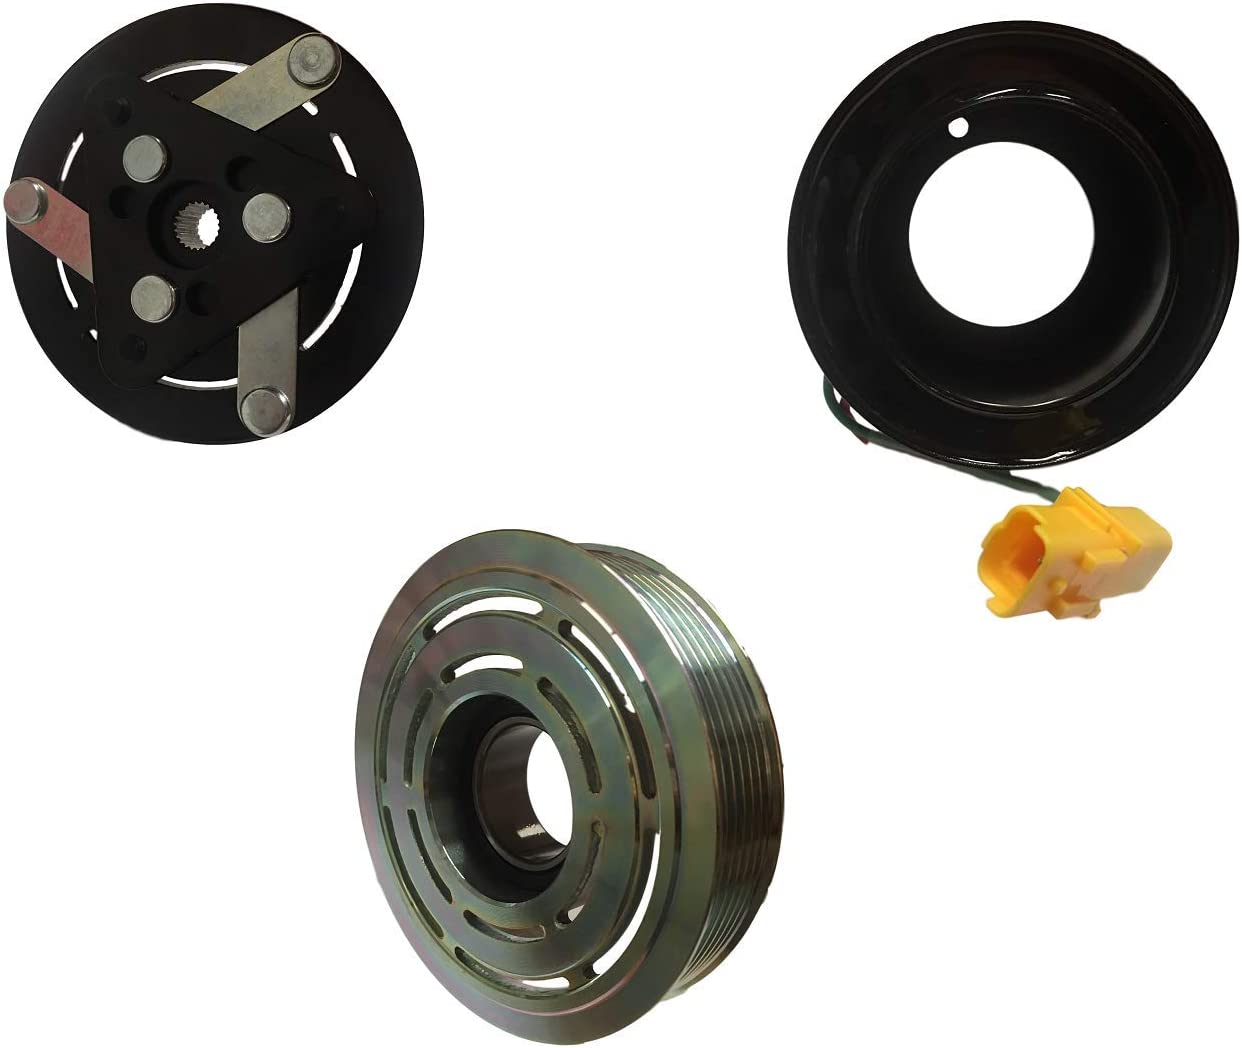 CoolTech AC Compressor Clutch Repair with Raleigh Mall Co Compatible Mini Kit price